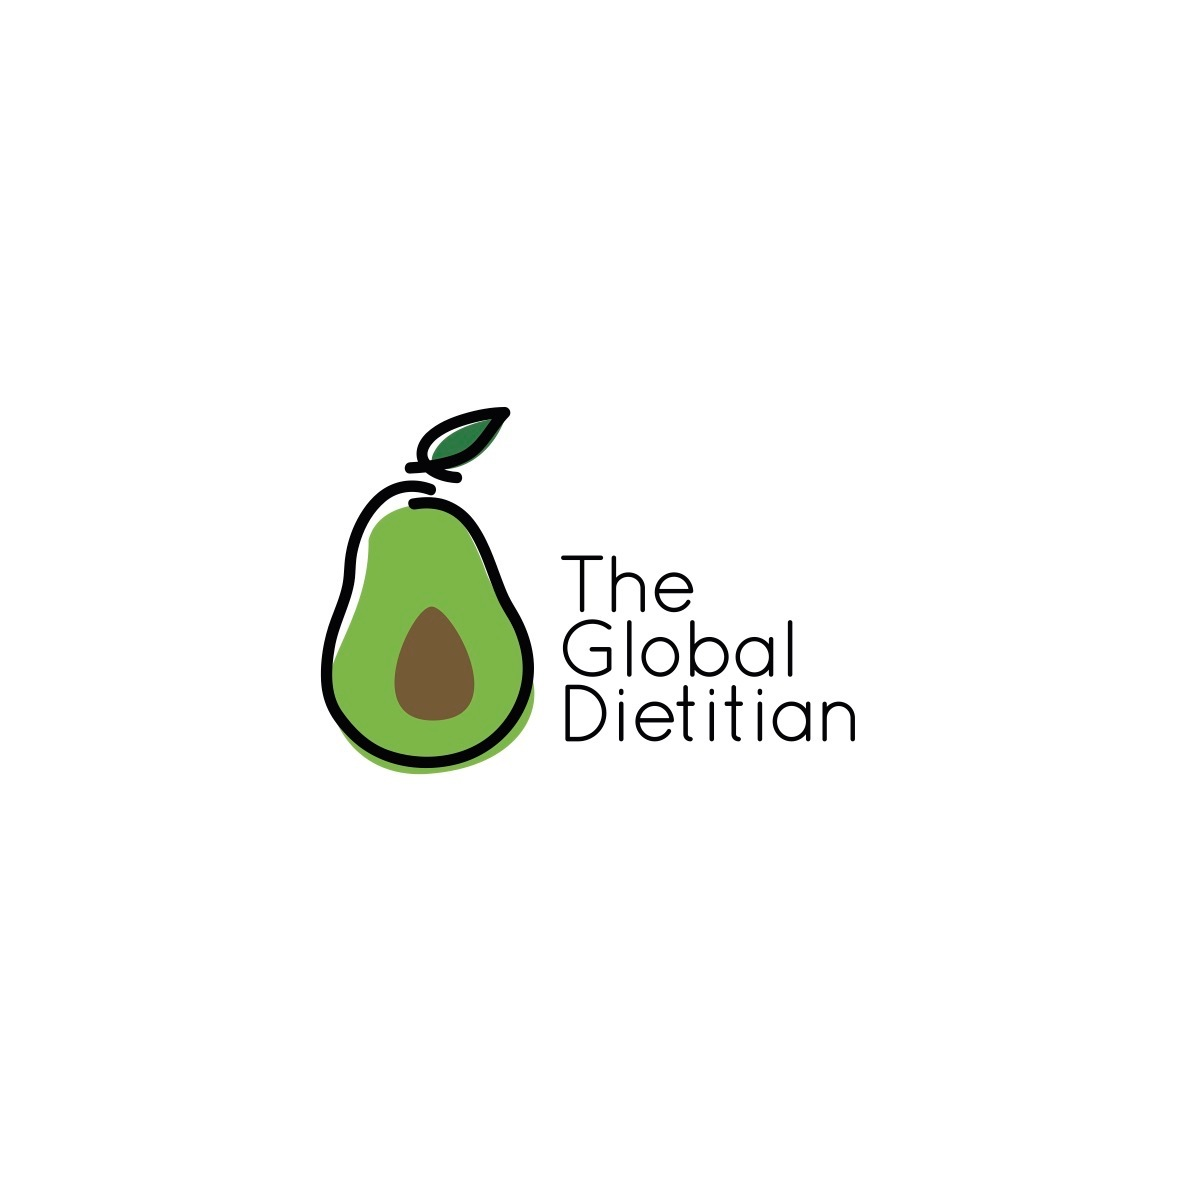 The Global Dietitian - Logo jpg website.jpeg